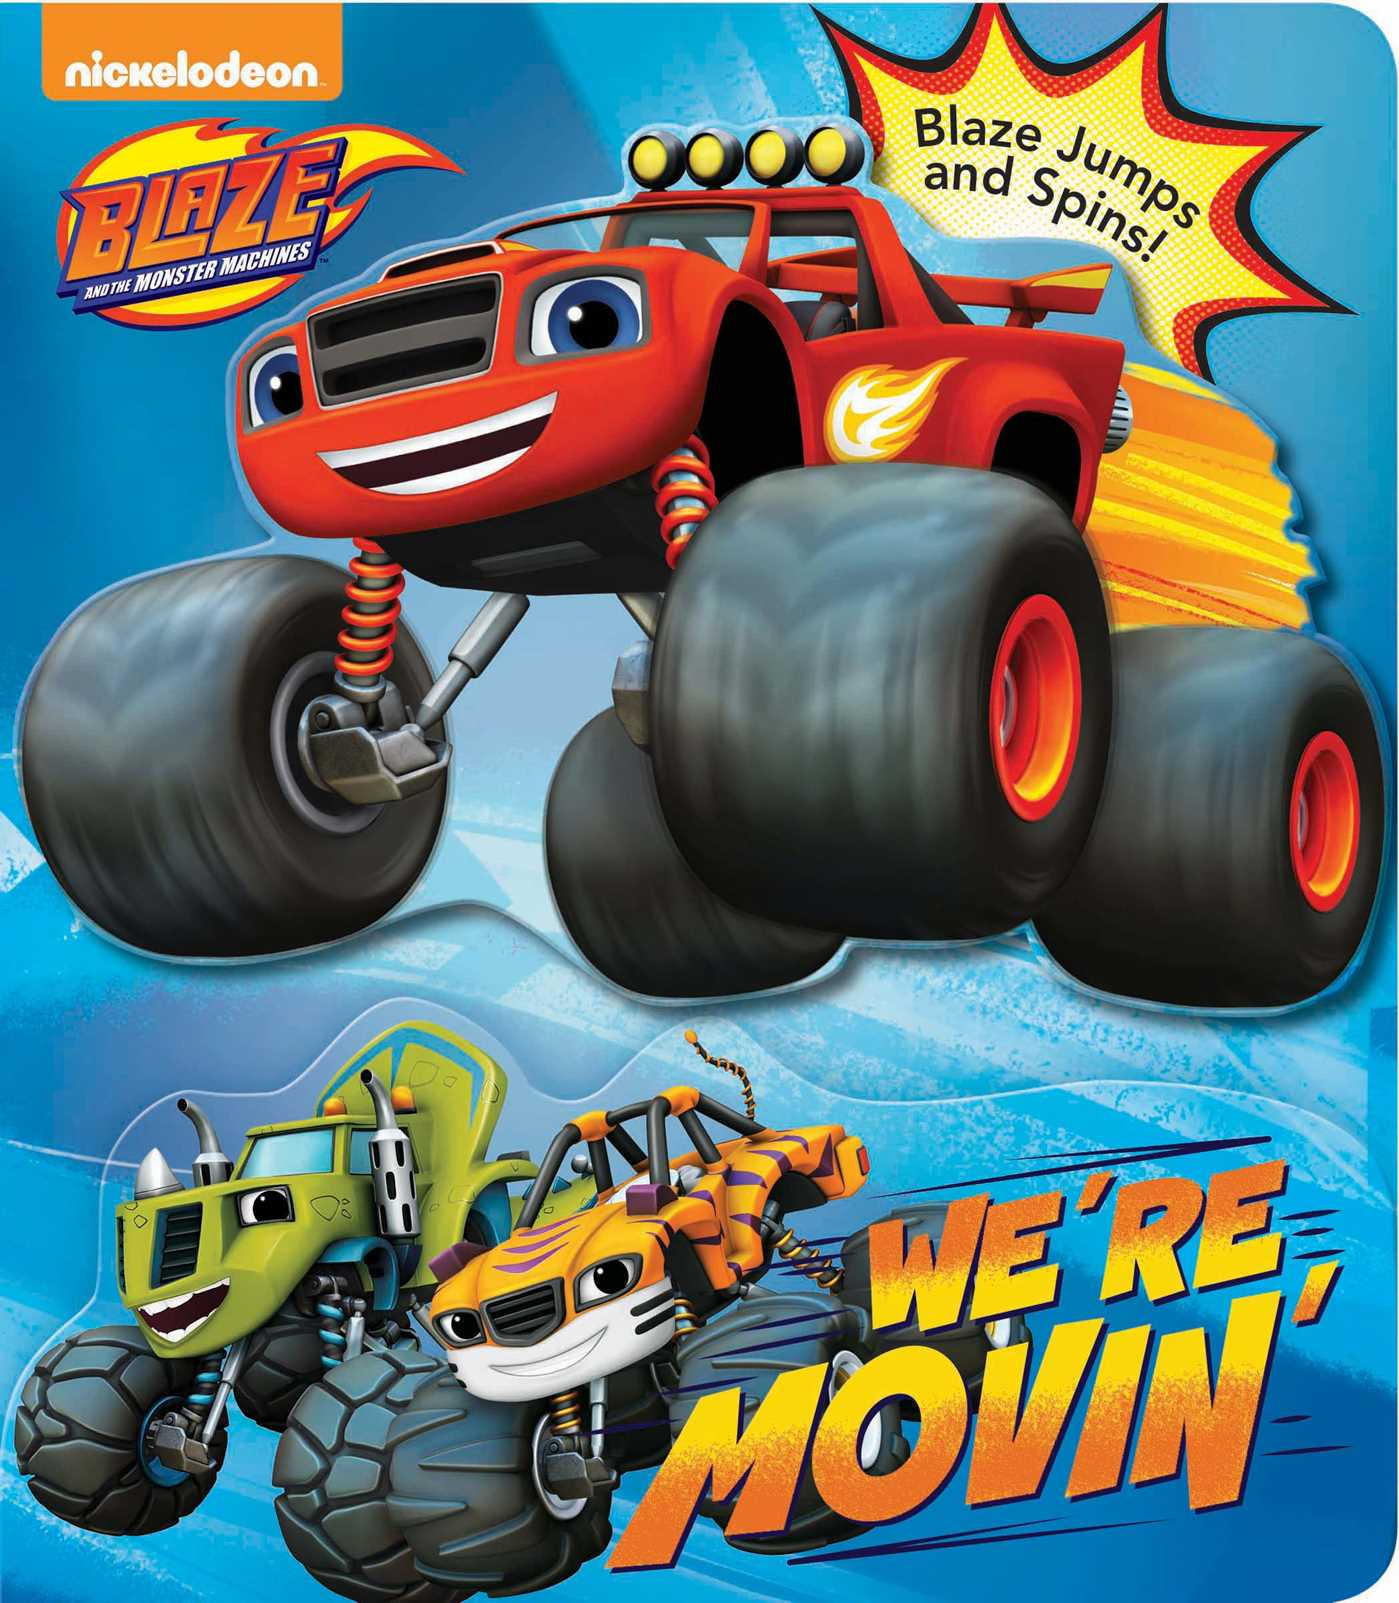 monster truck remote control car with 9780794437626 on 9780794437626 in addition Hsp Sheleton 15 Scale Gas Powered Monster Truck Rc Racing Car 30cc Engine Item No 94050 furthermore Monster Truck Coloring Pages furthermore 352035547940 together with 311775241018.